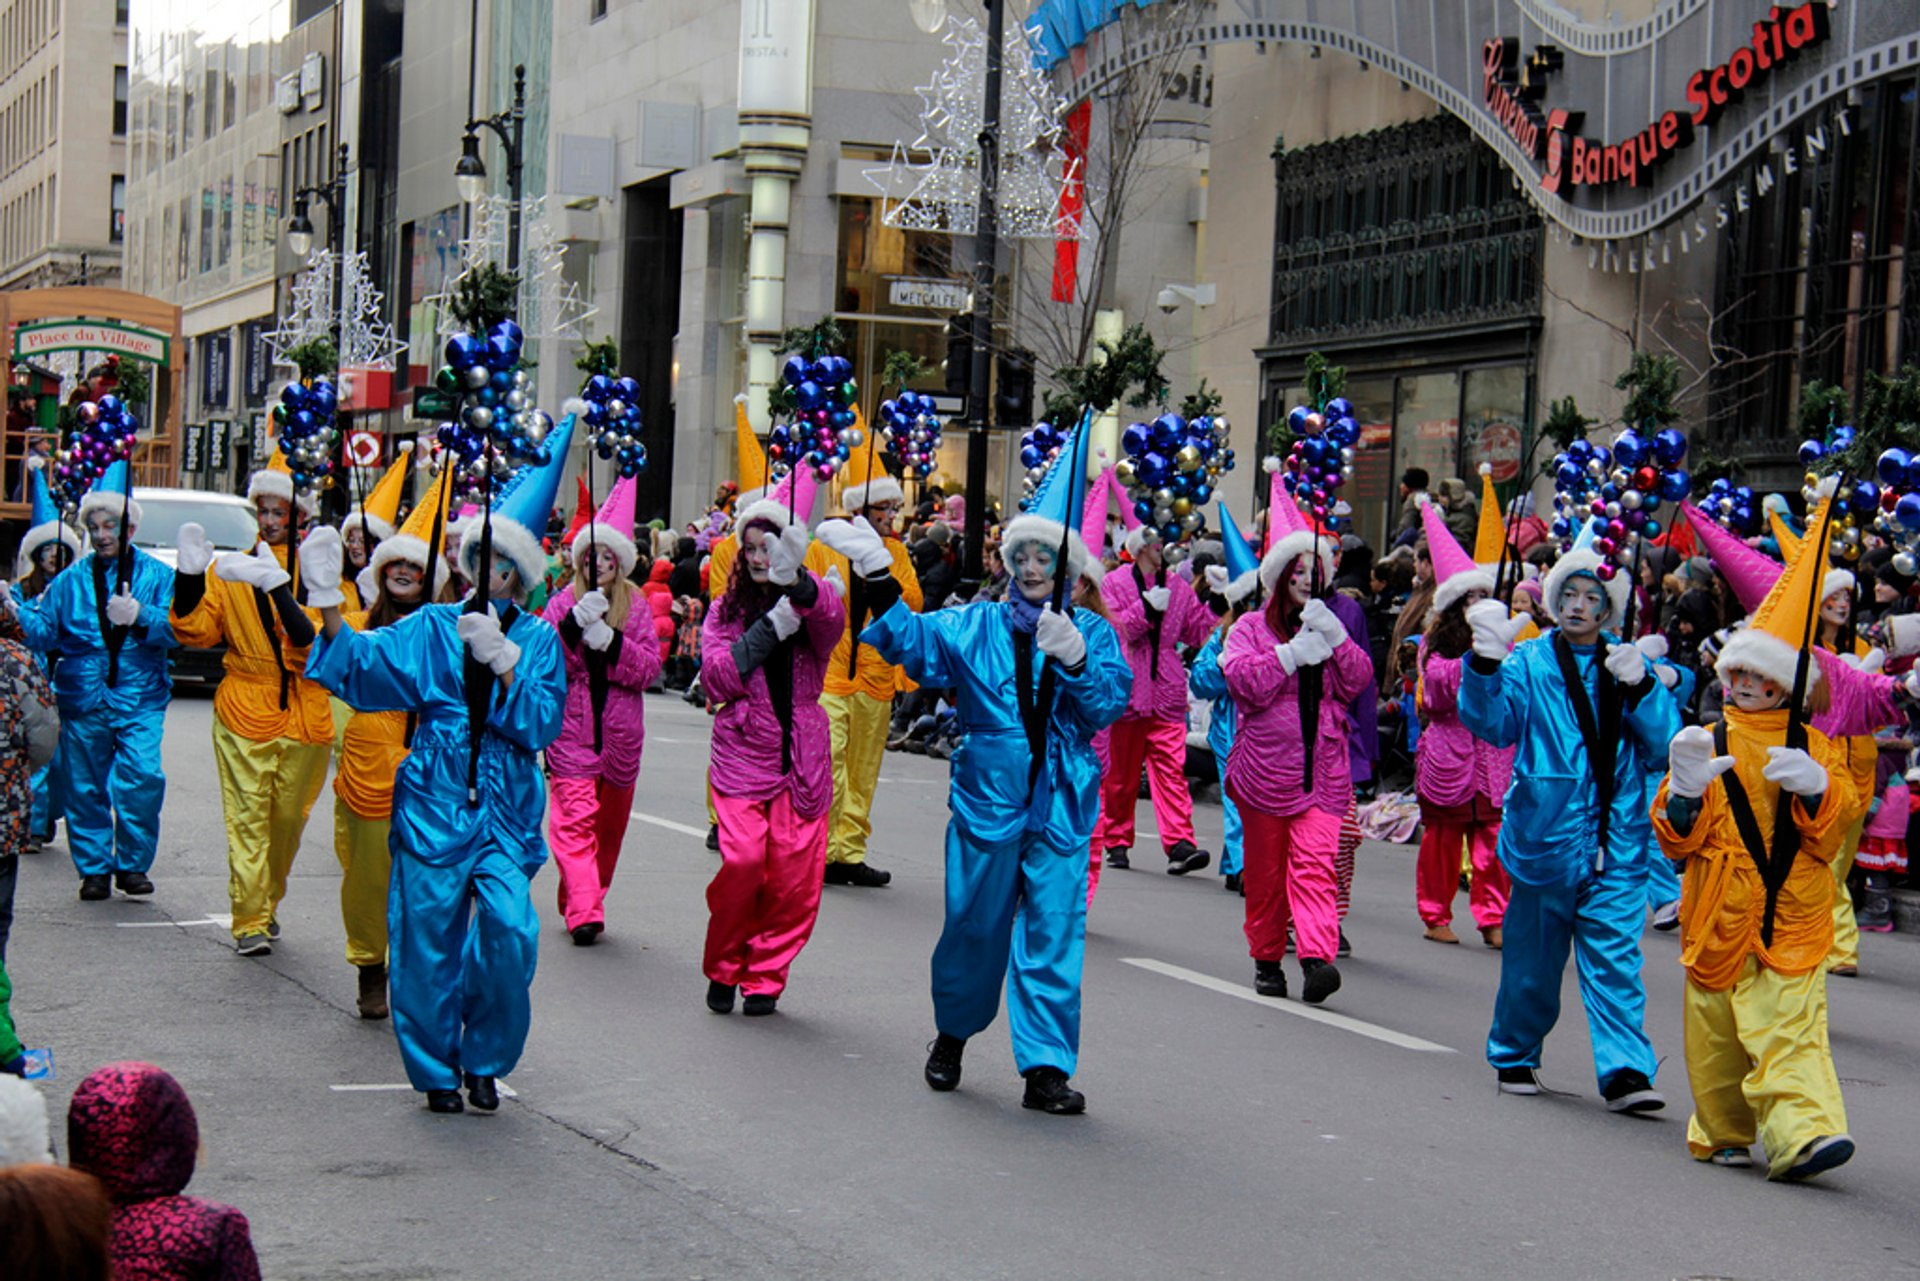 Montreal At Christmas 2020 Christmas Parades 2020 in Montreal   Dates